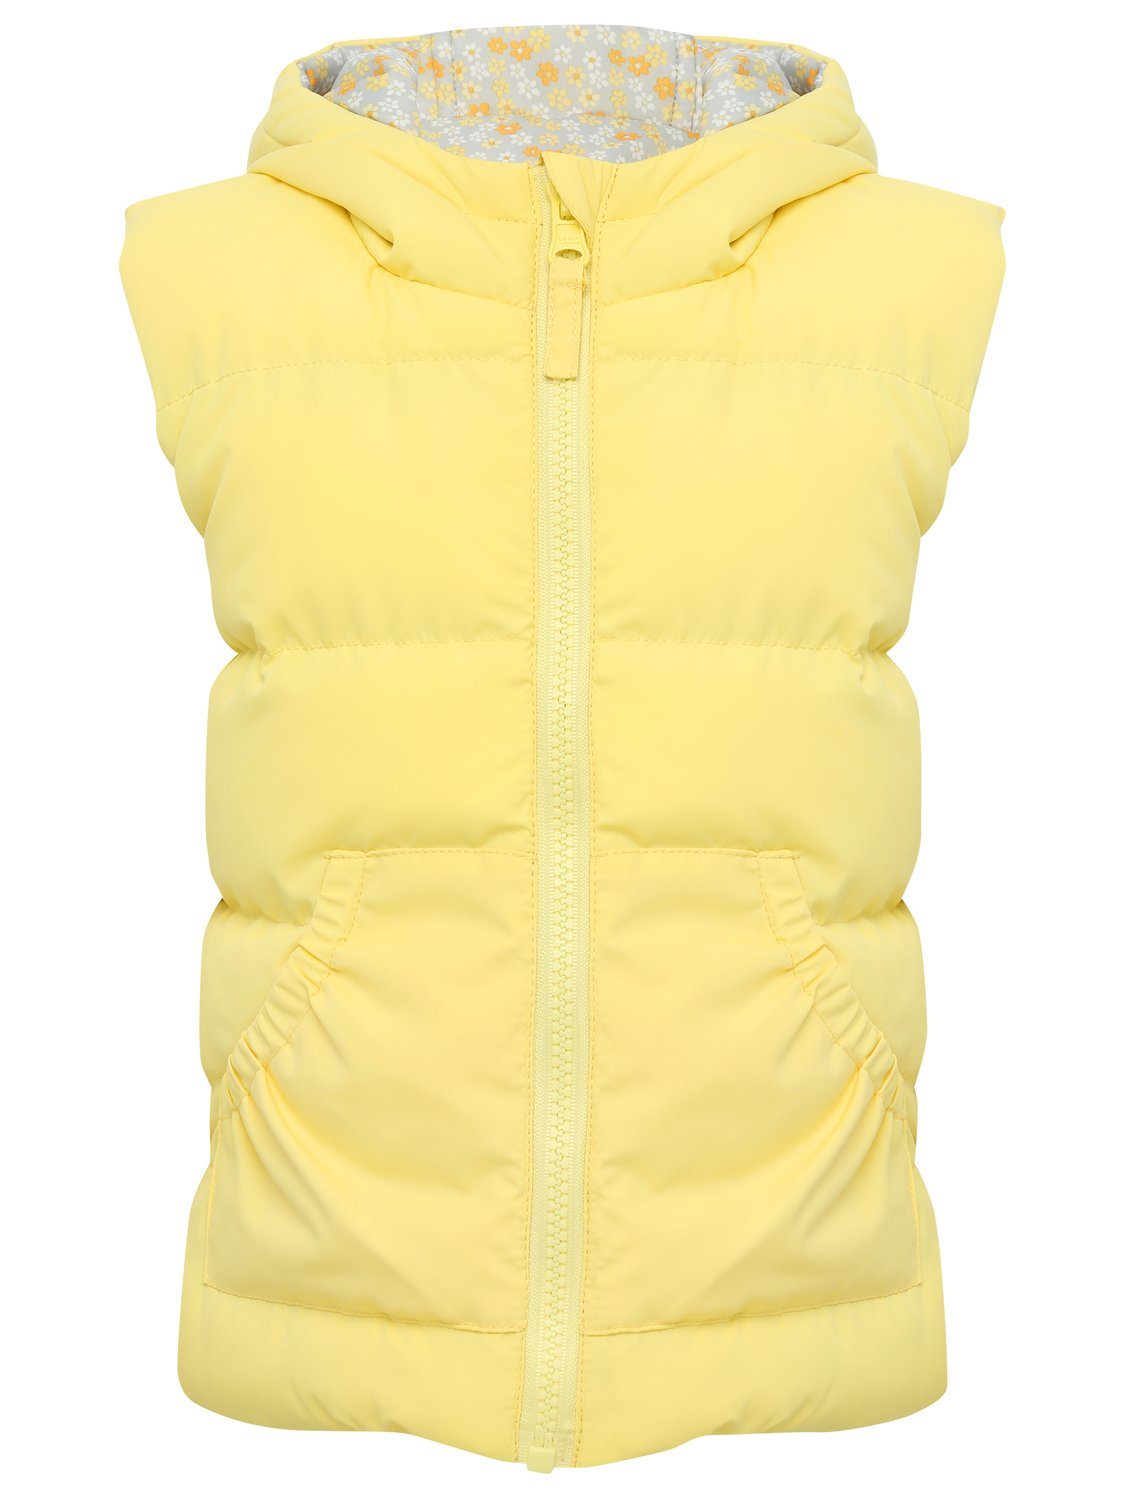 Girls sleeveless bright yellow reversible floral print padded hooded zip up gilet jacket   Yellow